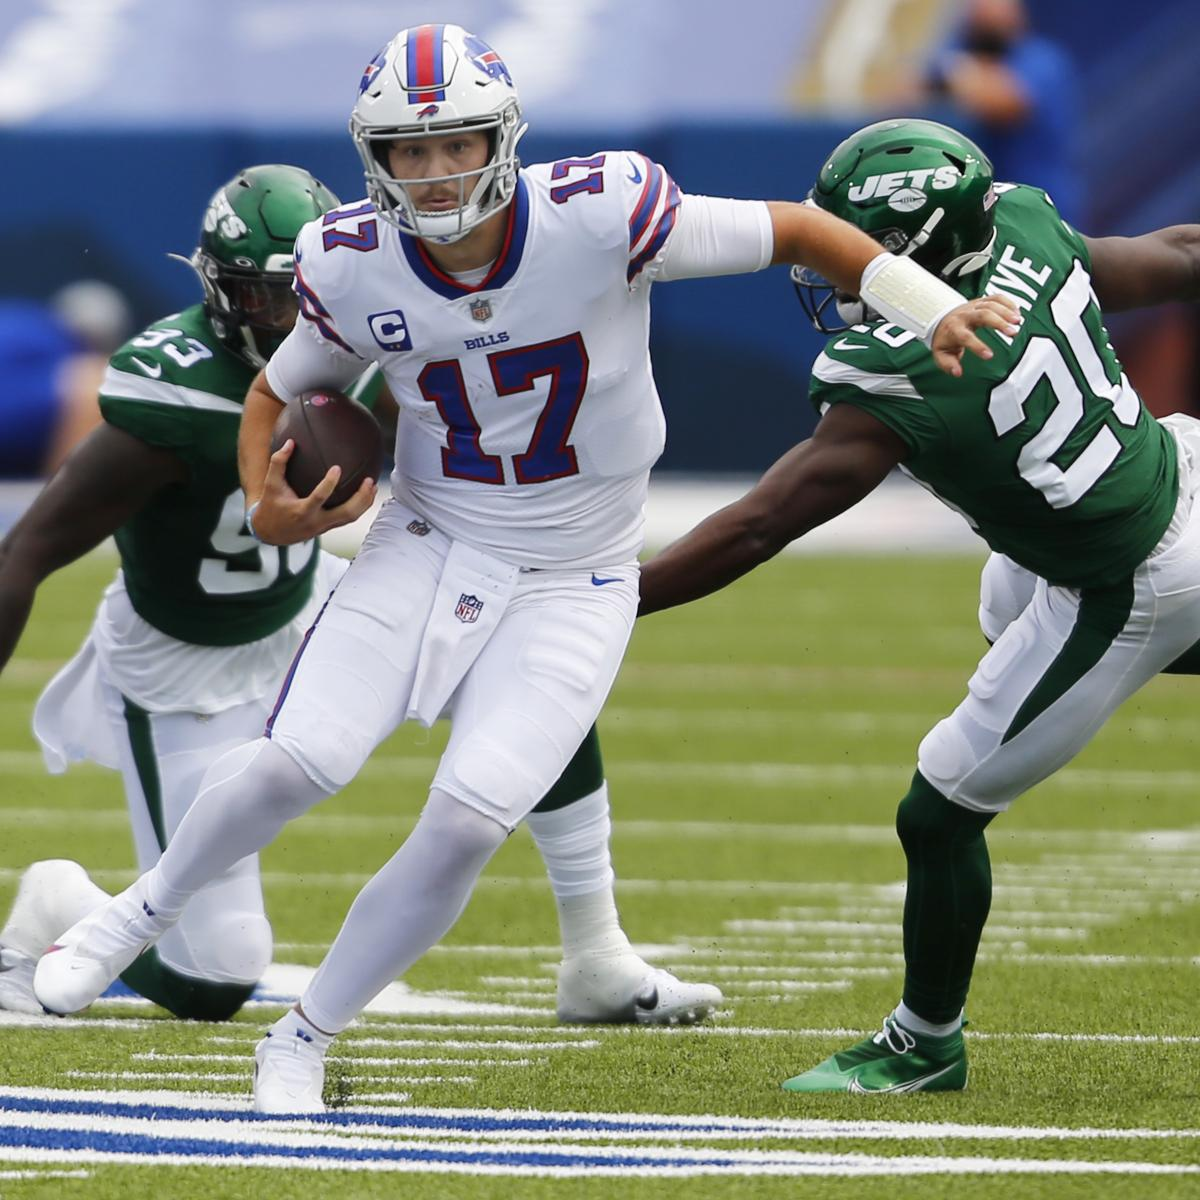 Fantasy Football Week 2 Rankings: Projections for Players with Matchups We Love